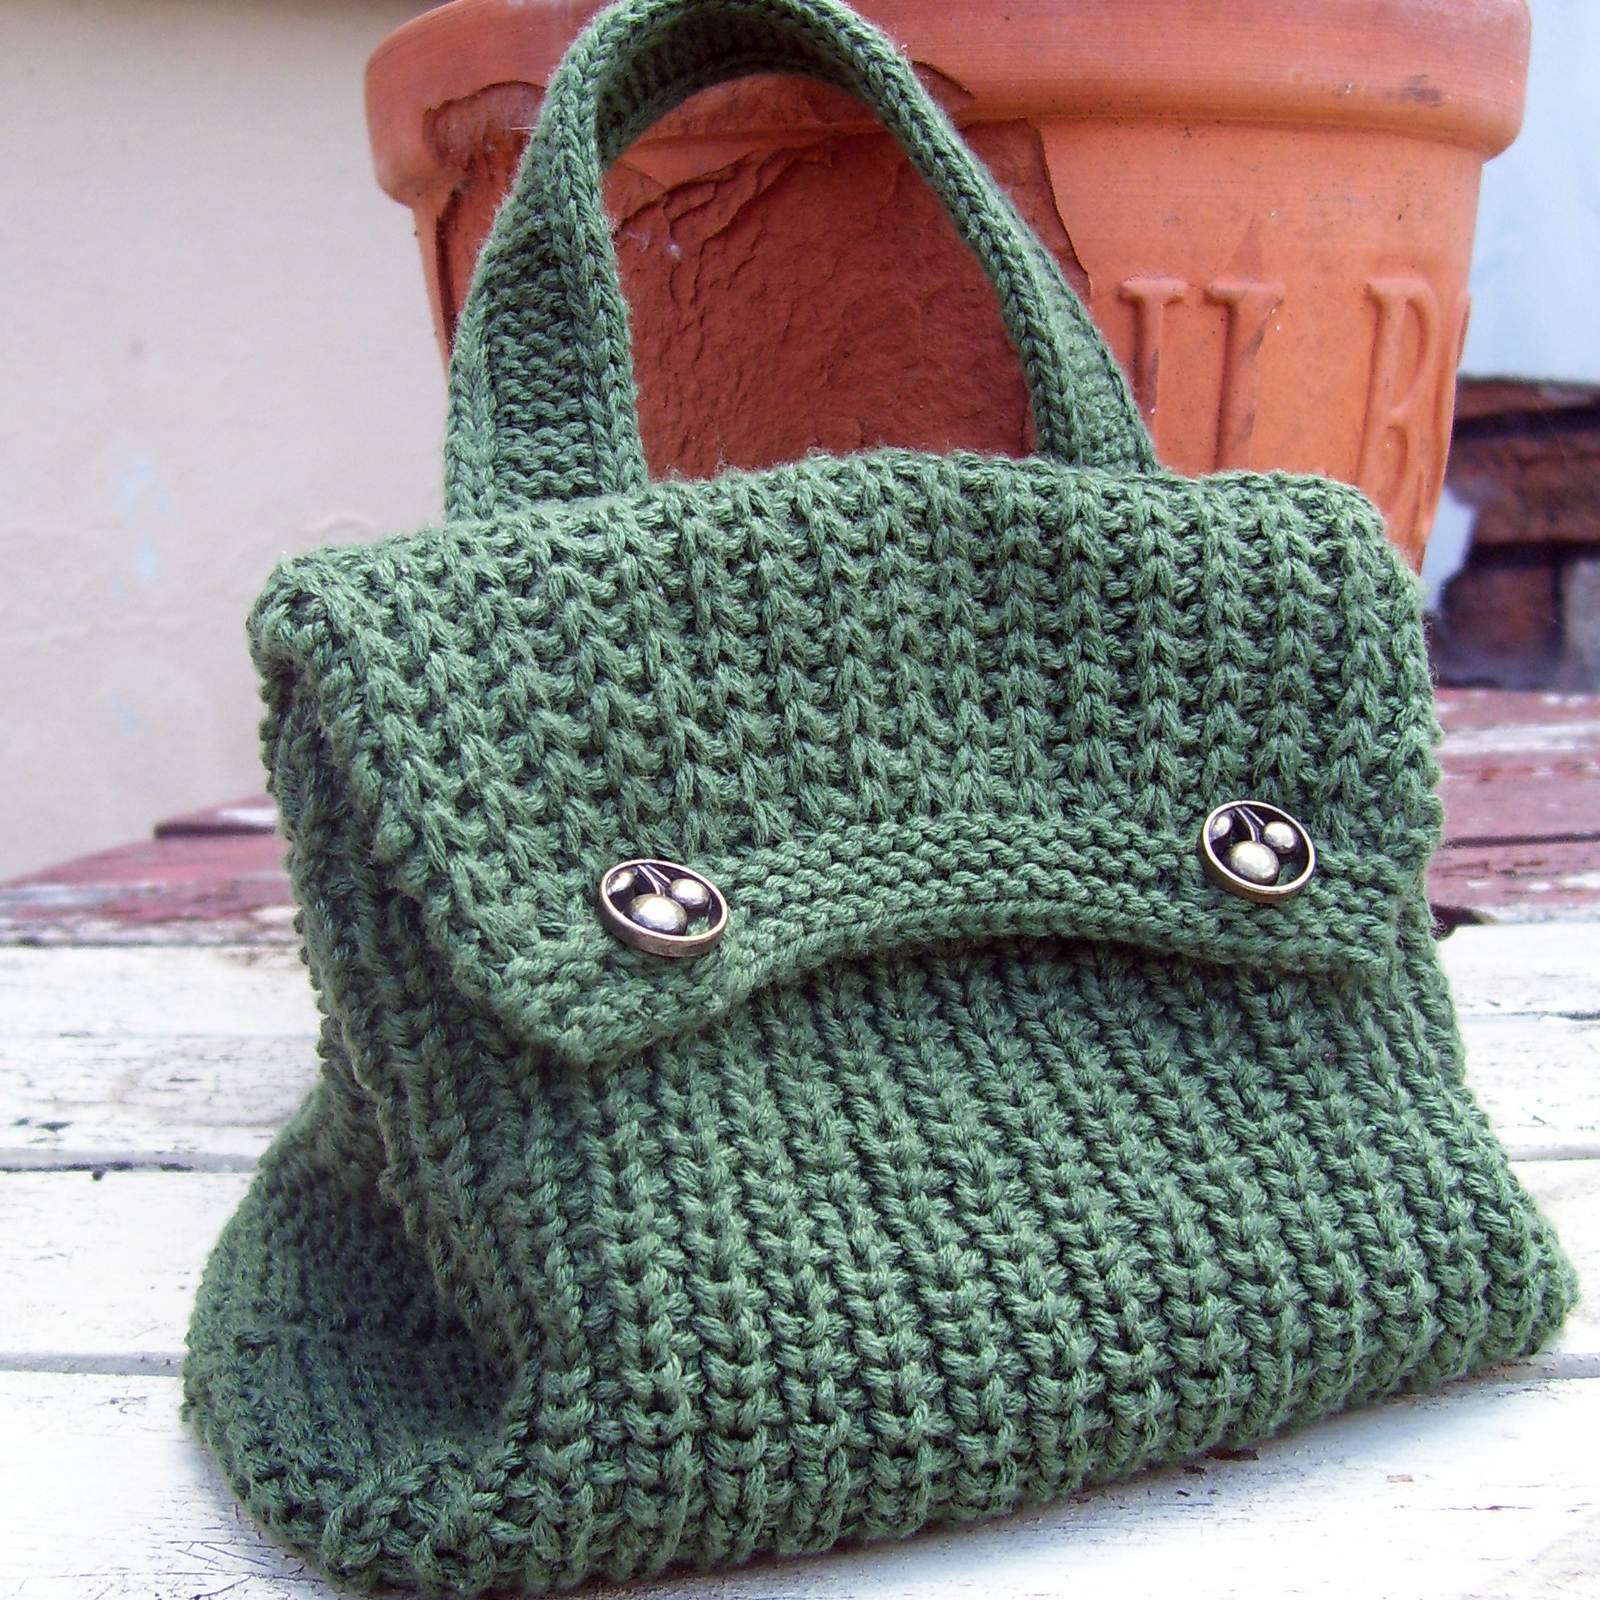 Bag Crochet Pattern Free Download : Over 200 Free Knitted Bags, Purses and Totes Knitting Patterns